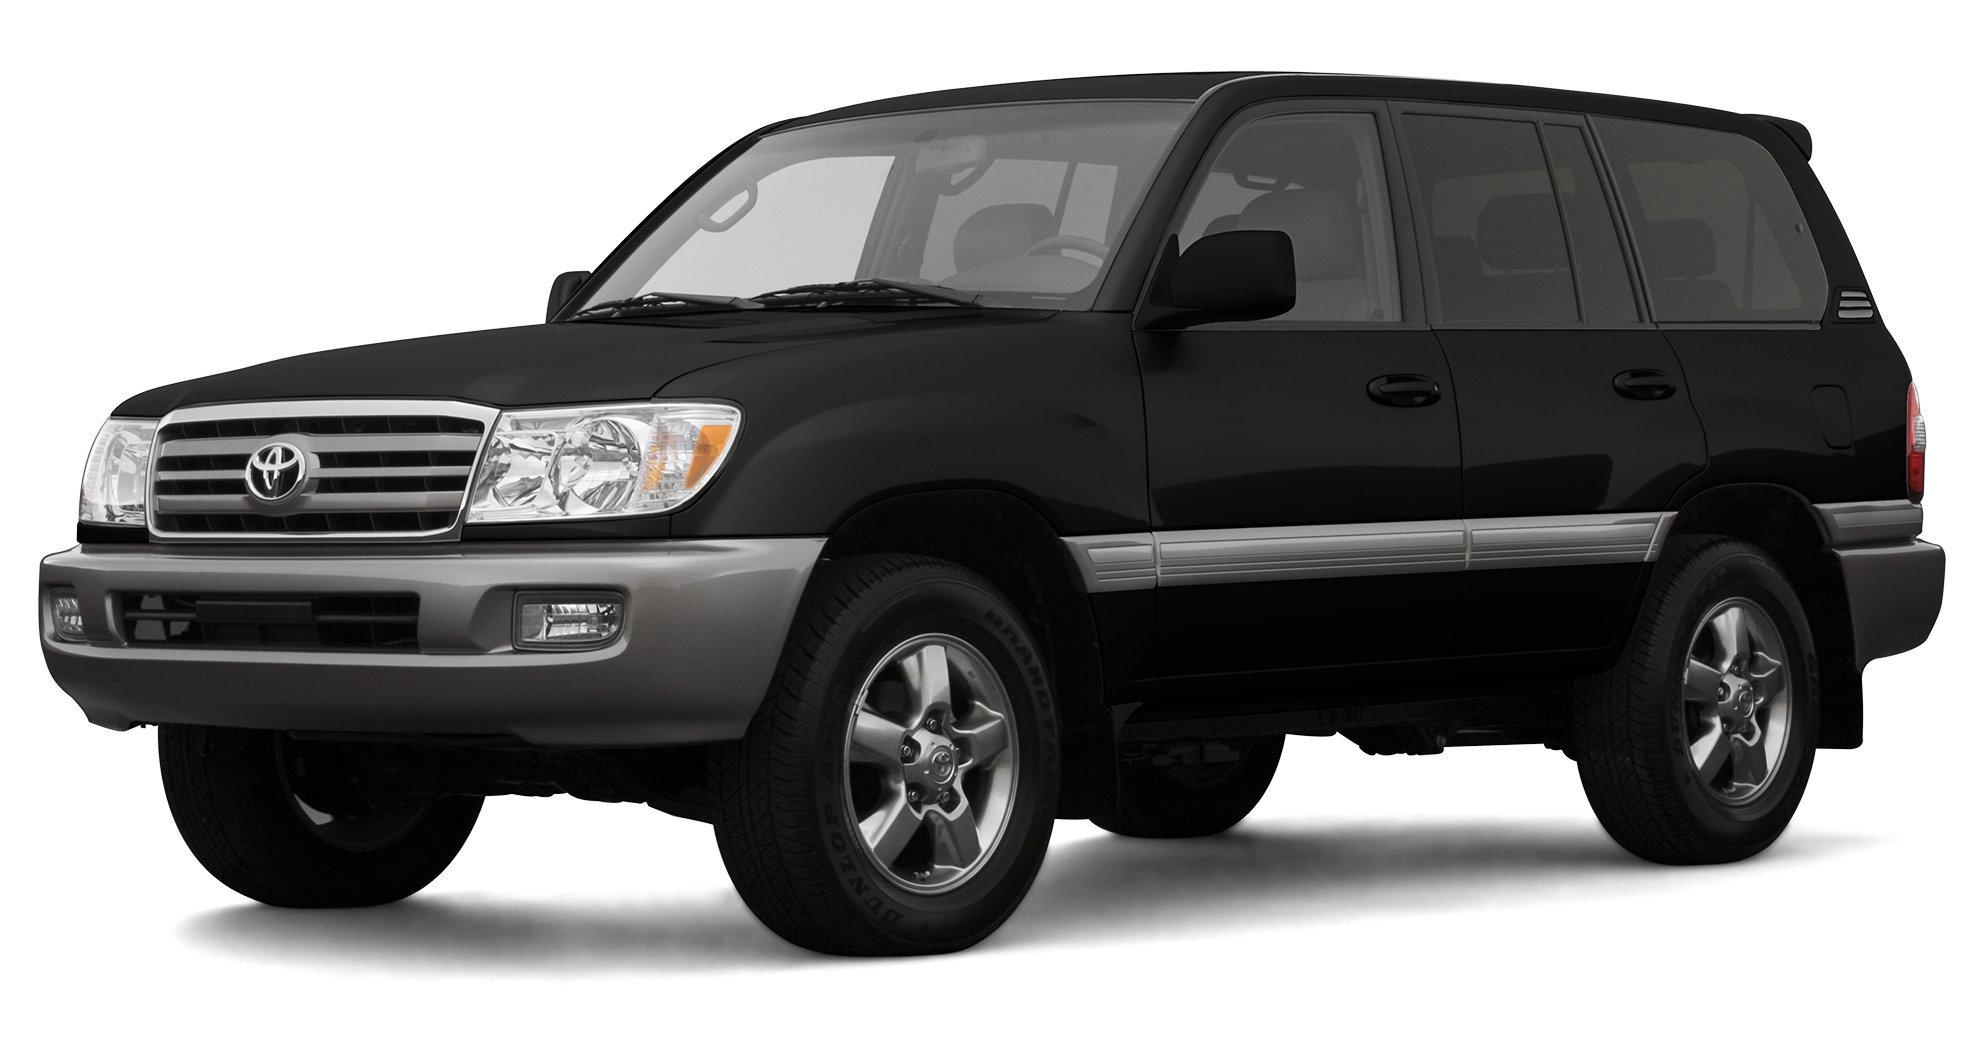 Lovely 2007 Toyota Land Cruiser, 4 Door 4 Wheel Drive (GS) ...